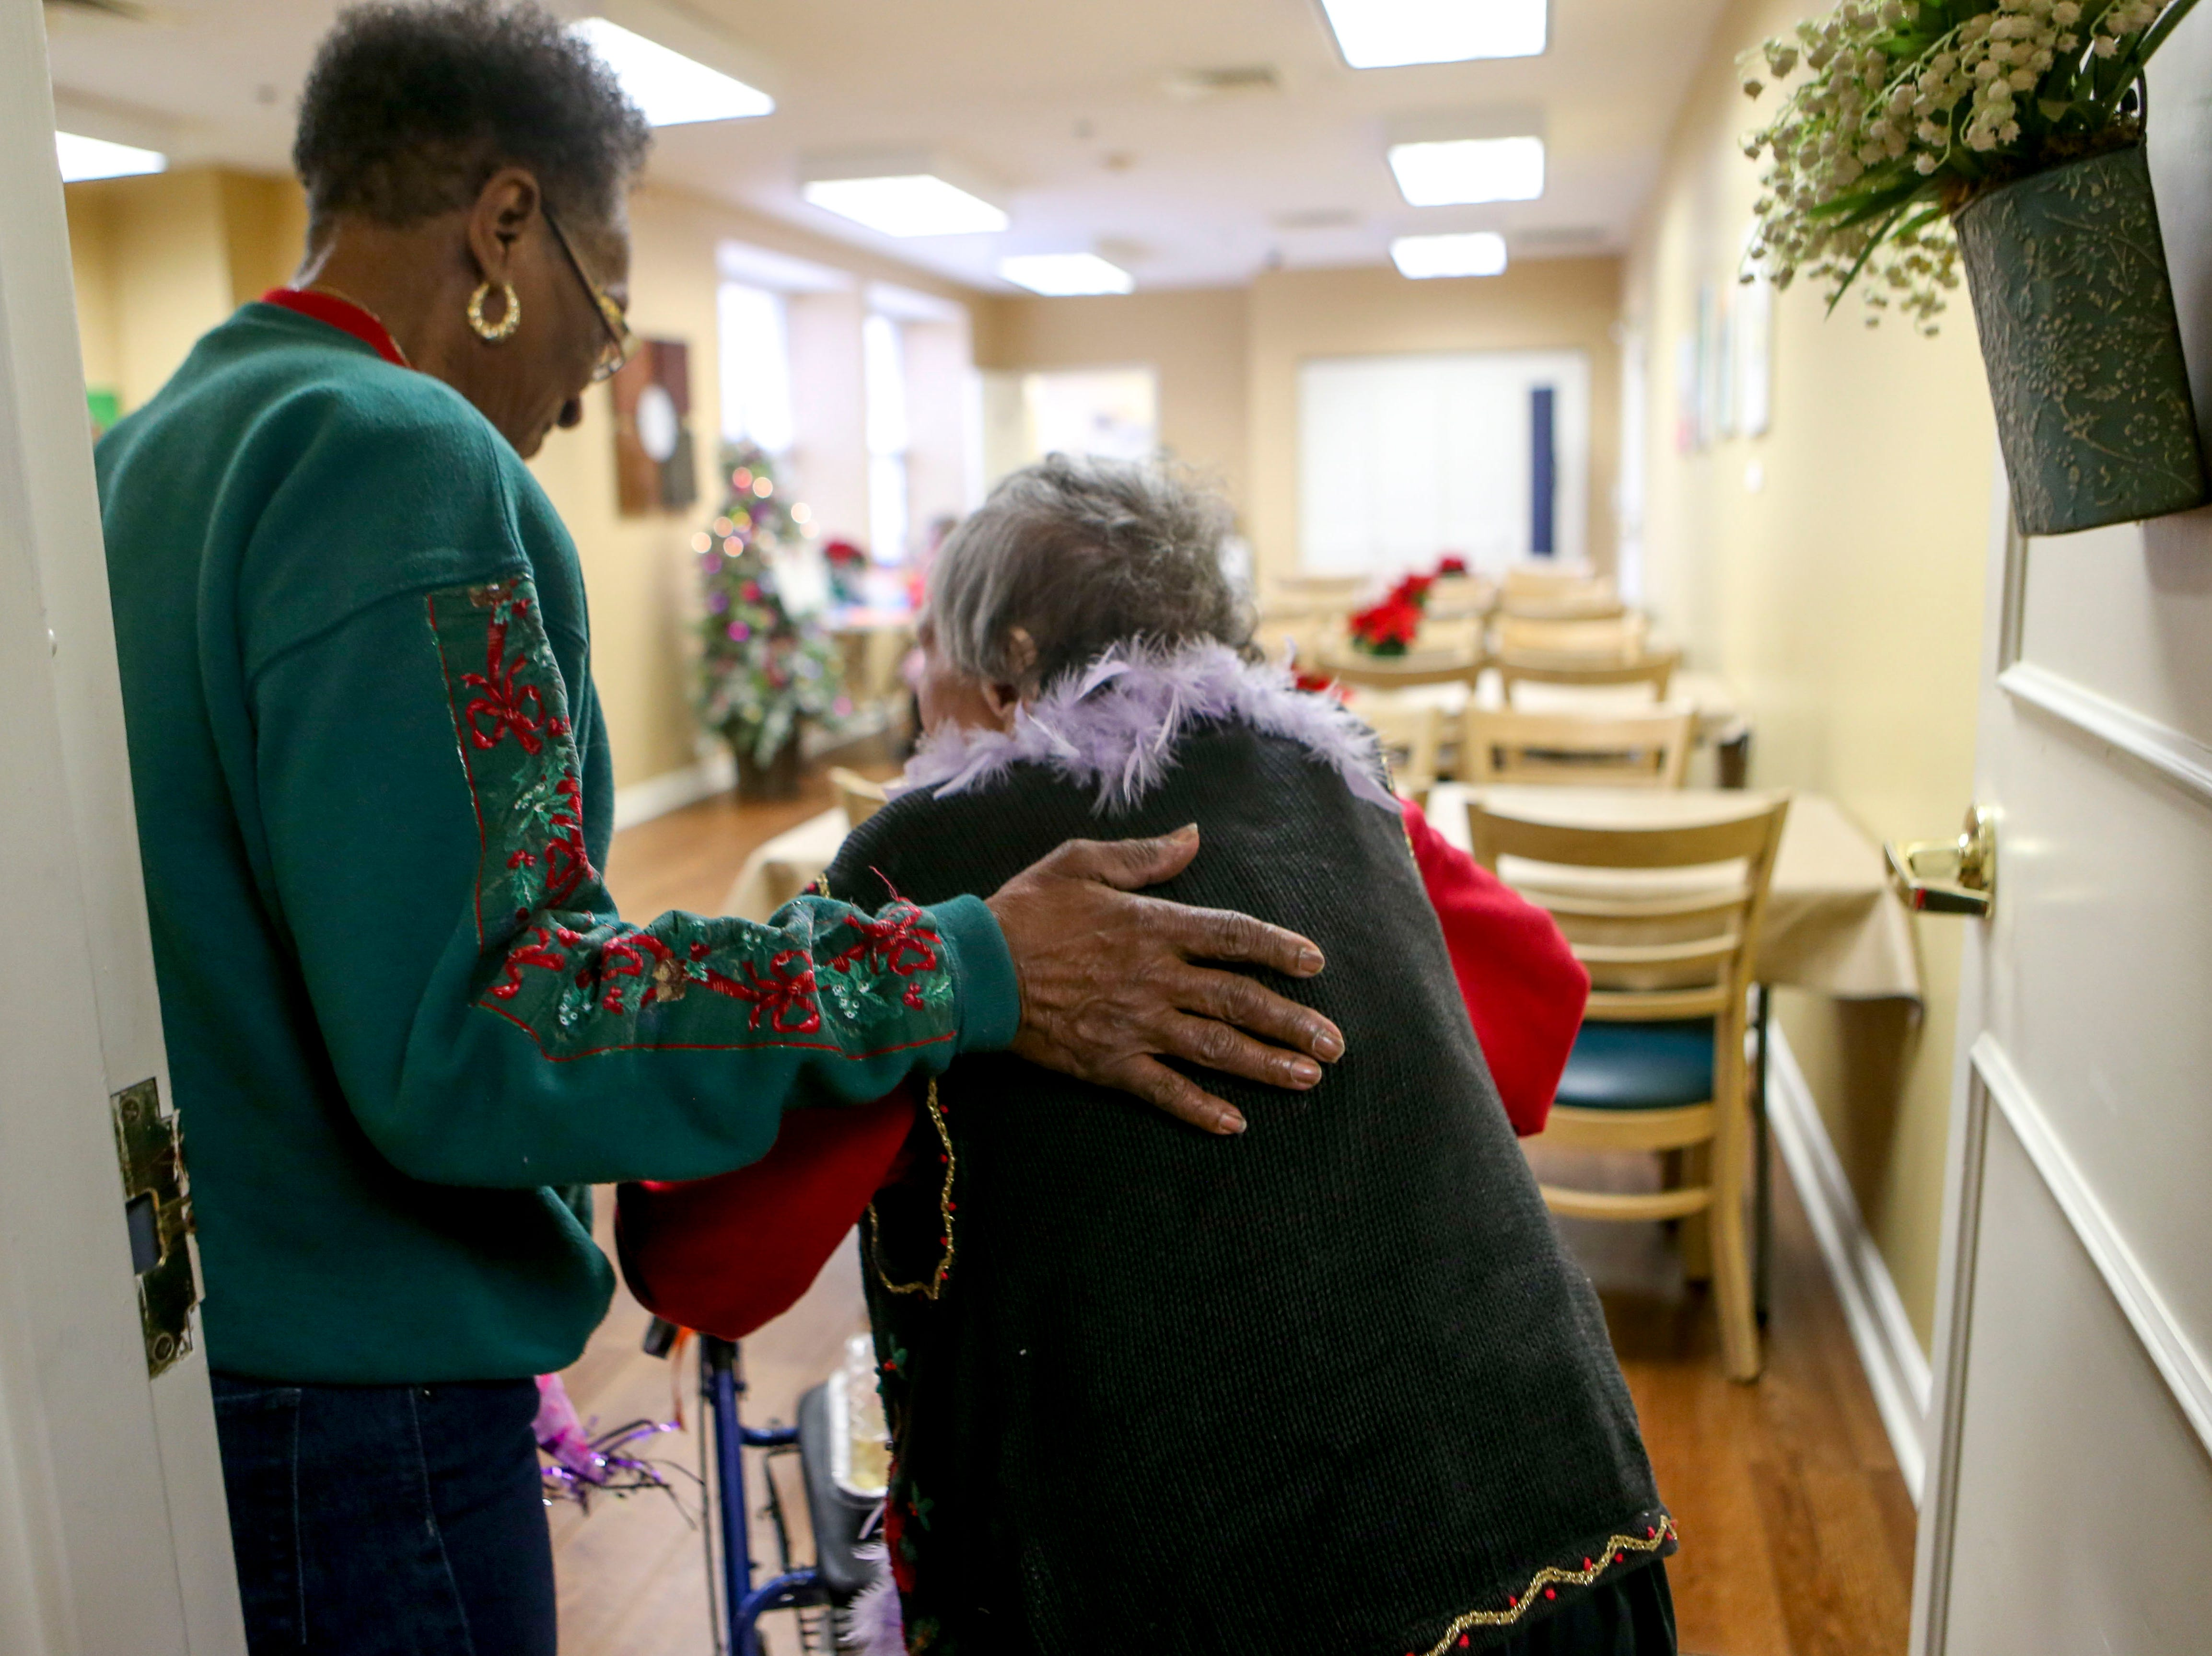 Anne Boston guides Ida Feldman, who turned 100 years old on Thursday, into the cafeteria for photos on her birthday at Regency Retirement Home in Jackson, Tenn., on Thursday, Dec. 20, 2018.